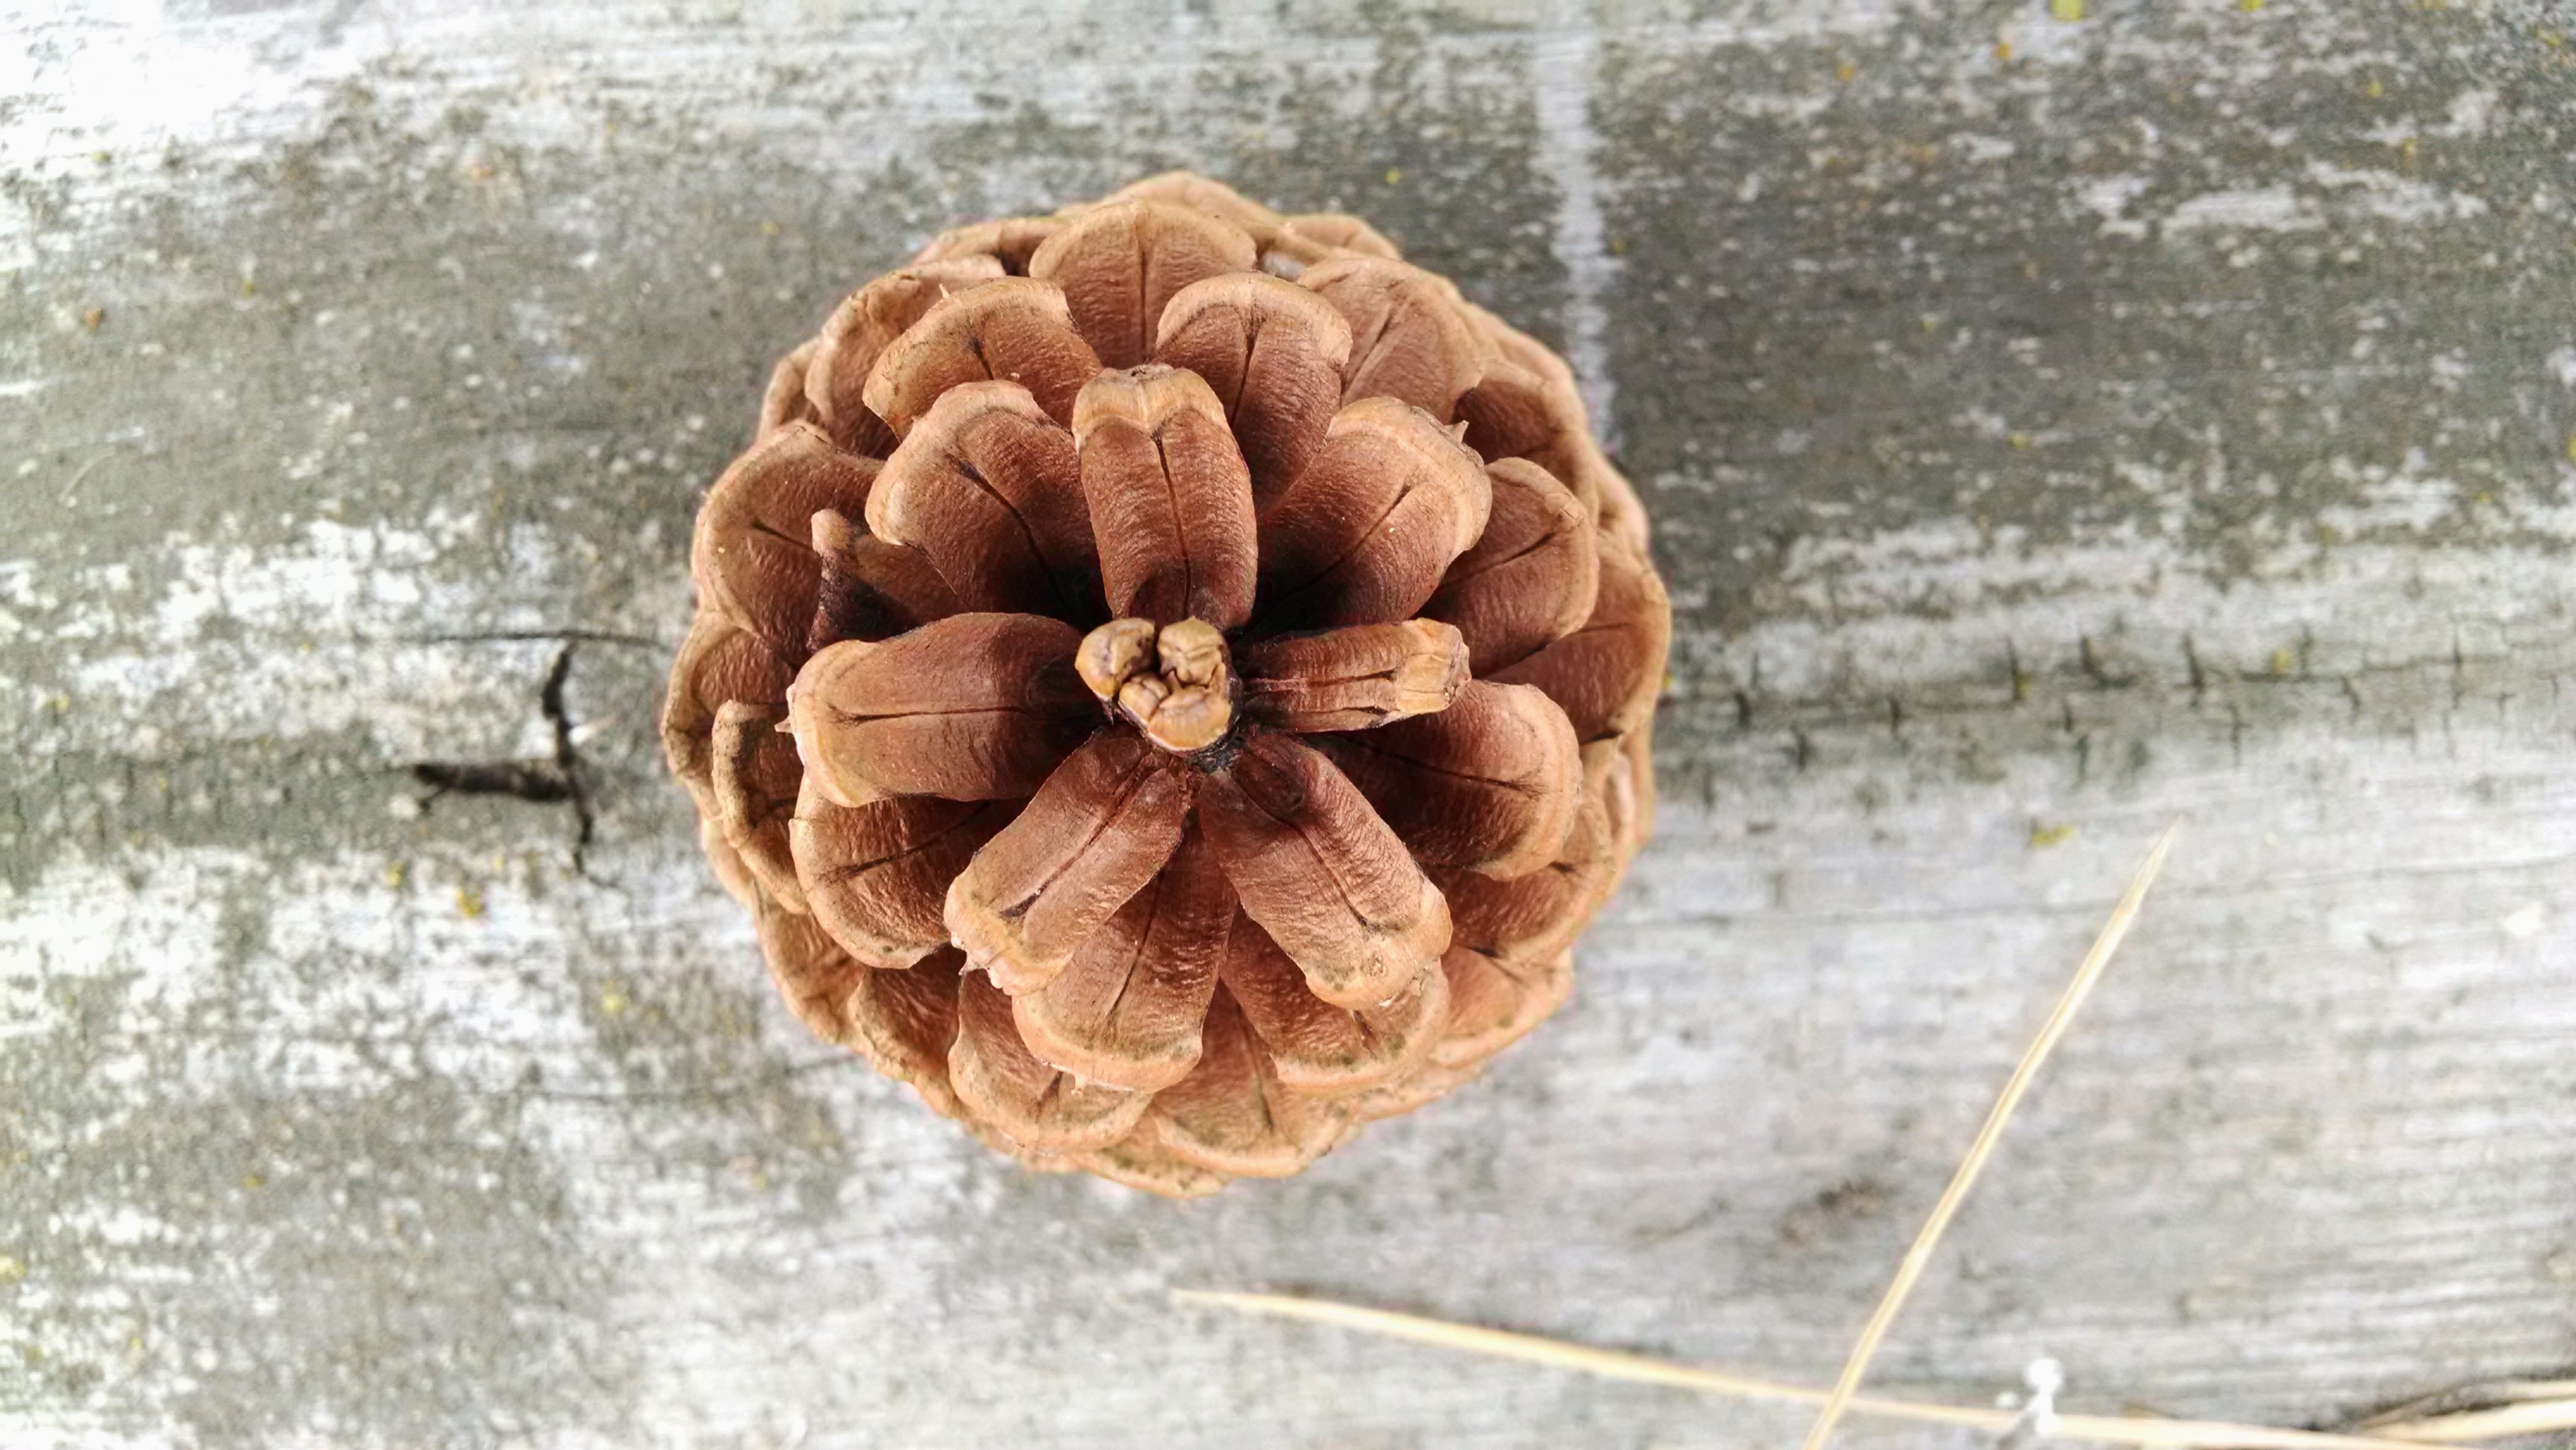 Brown Pine Cone in Close-up Photo